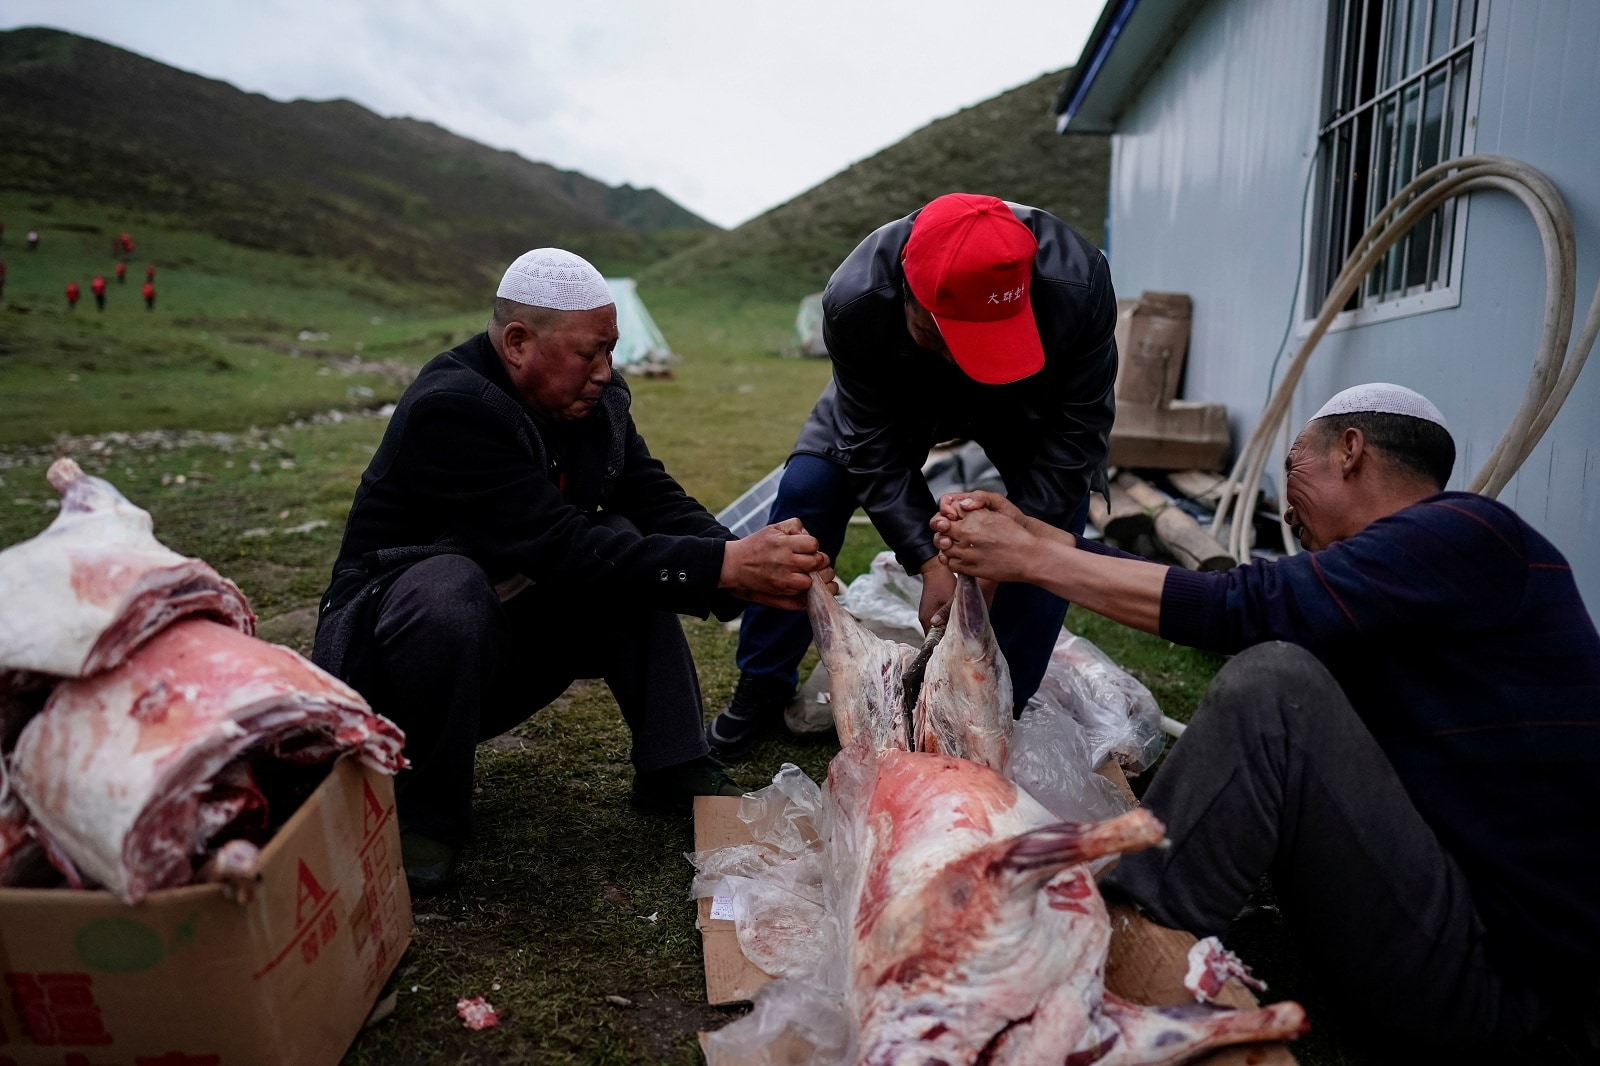 Cordyceps pickers cut up lamb carcasses at a base camp on a mountain in the Amne Machin range in China's western Qinghai province, June 7, 2019. Cordyceps pickers are hired by a local company to find and pick the Ophiocordyceps sinensis, a fungus believed to possess aphrodisiac and medicinal powers. REUTERS/Aly Song